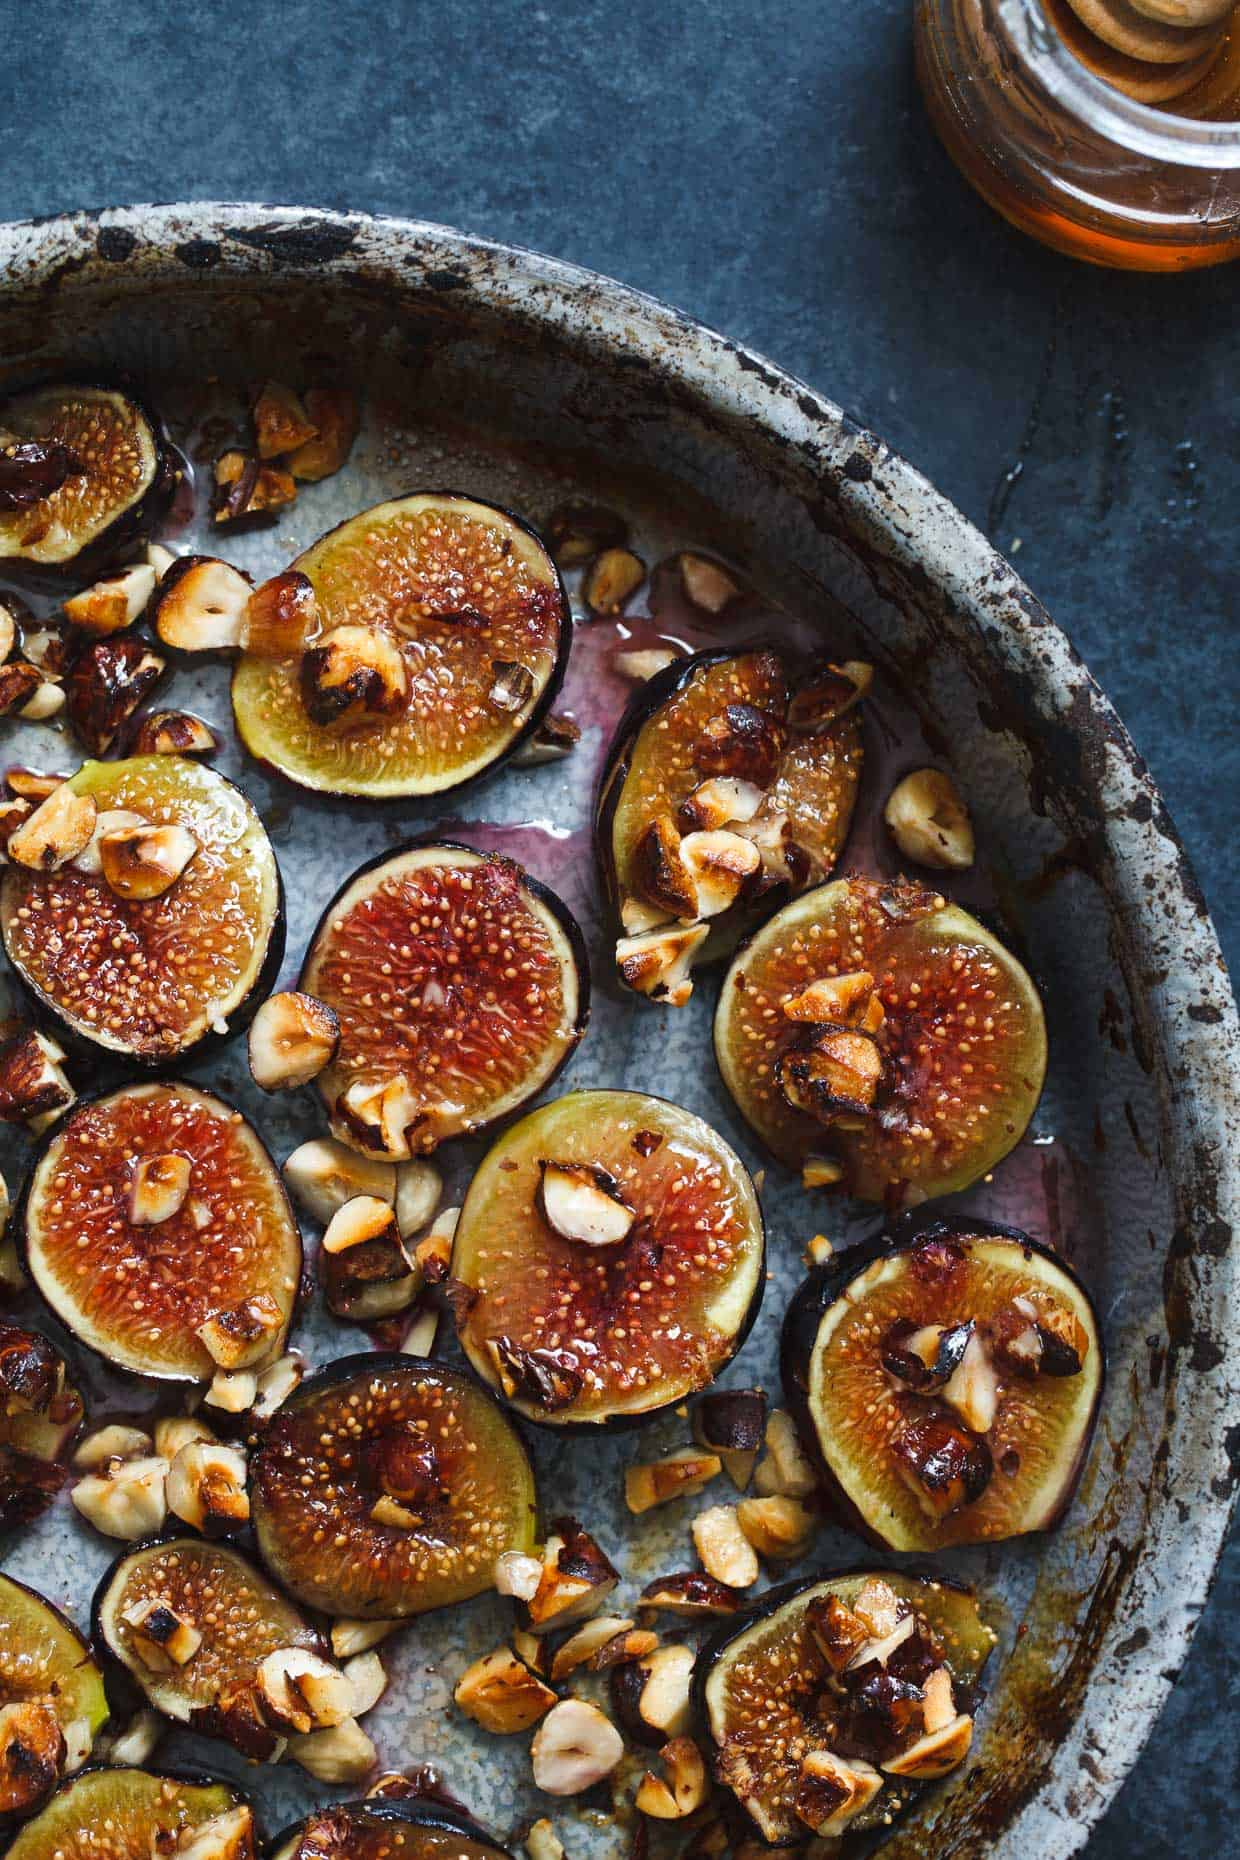 Honey Roasted Figs & Hazelnuts